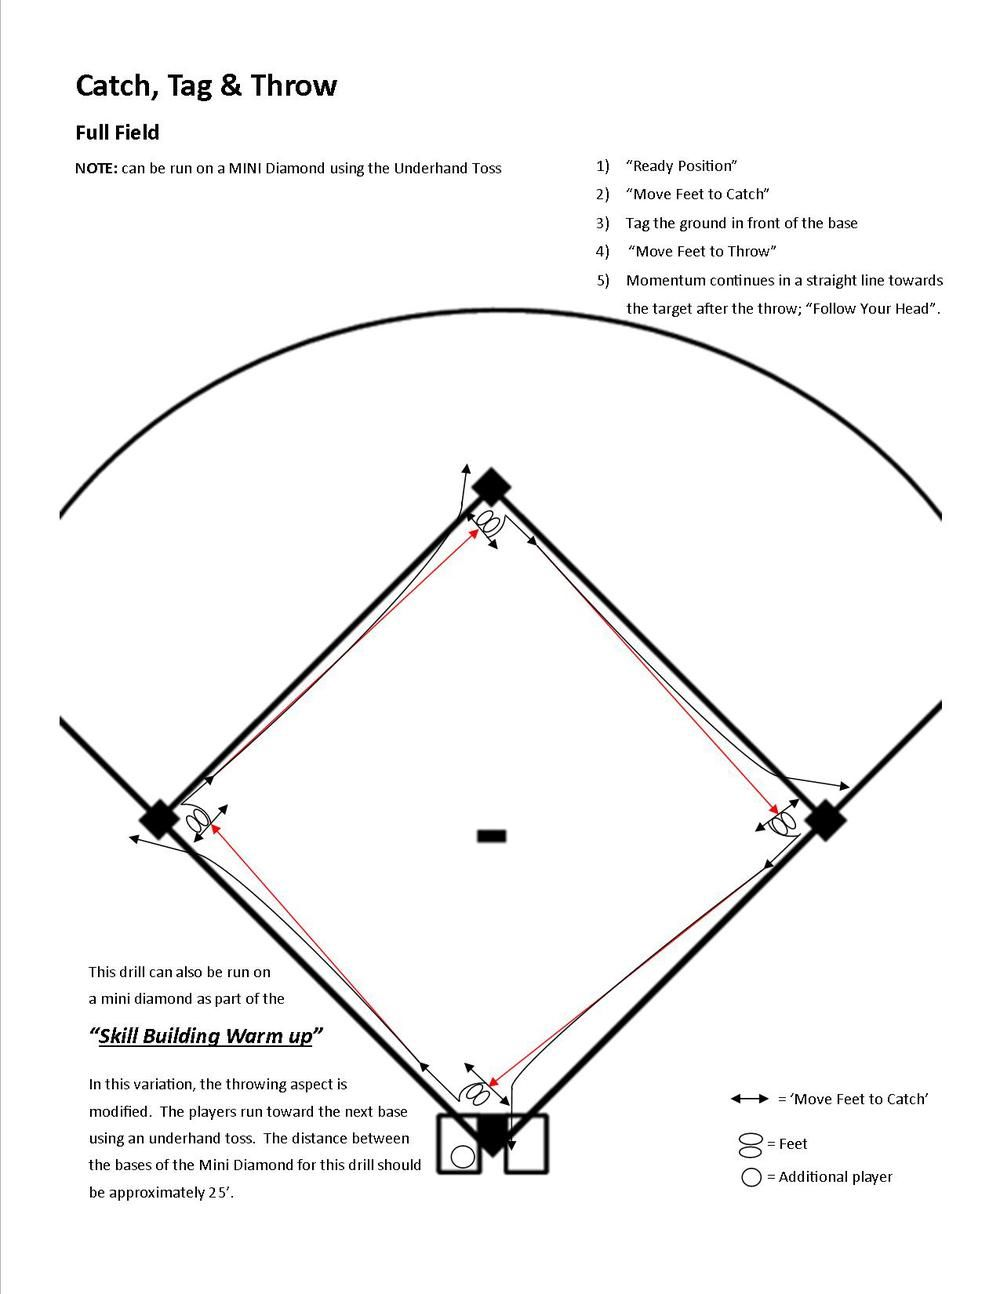 Five players are needed to run this drill. Two at the base